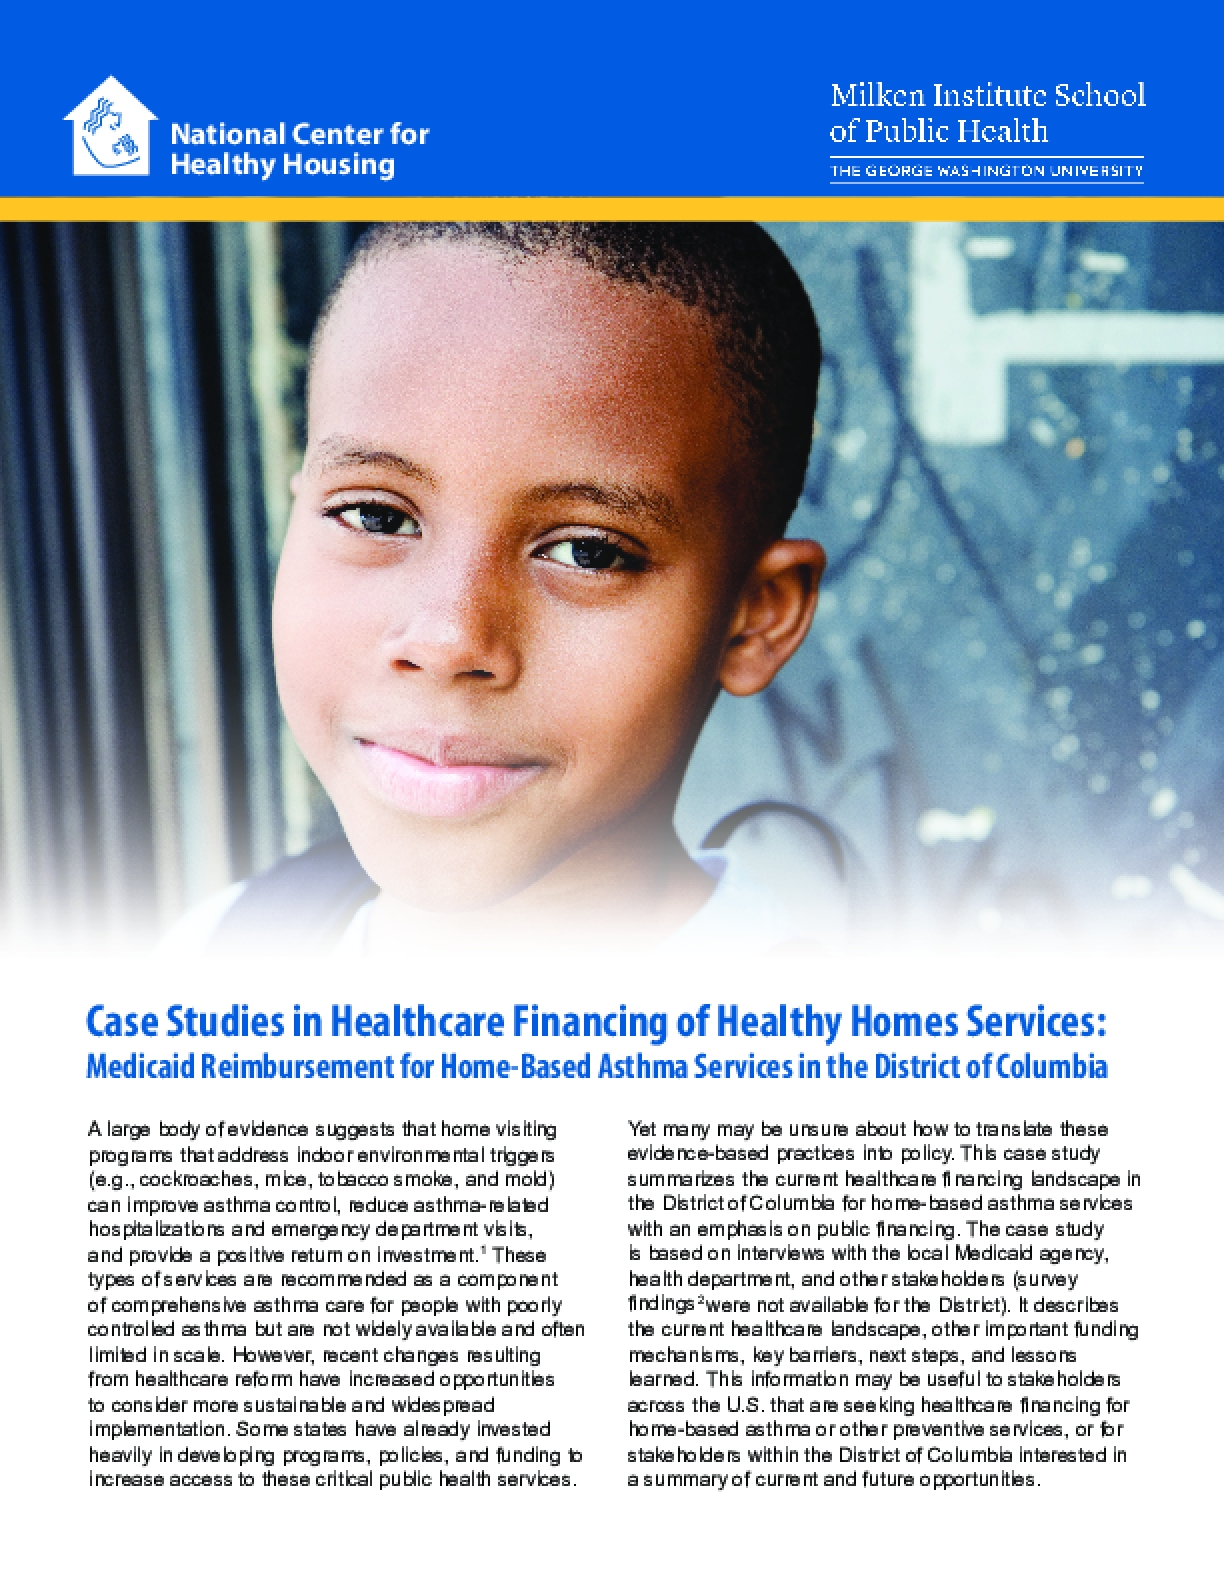 Case Studies in Healthcare Financing of Healthy Homes Services: Medicaid Reimbursement for Home-Based Asthma Services in the District of Columbia